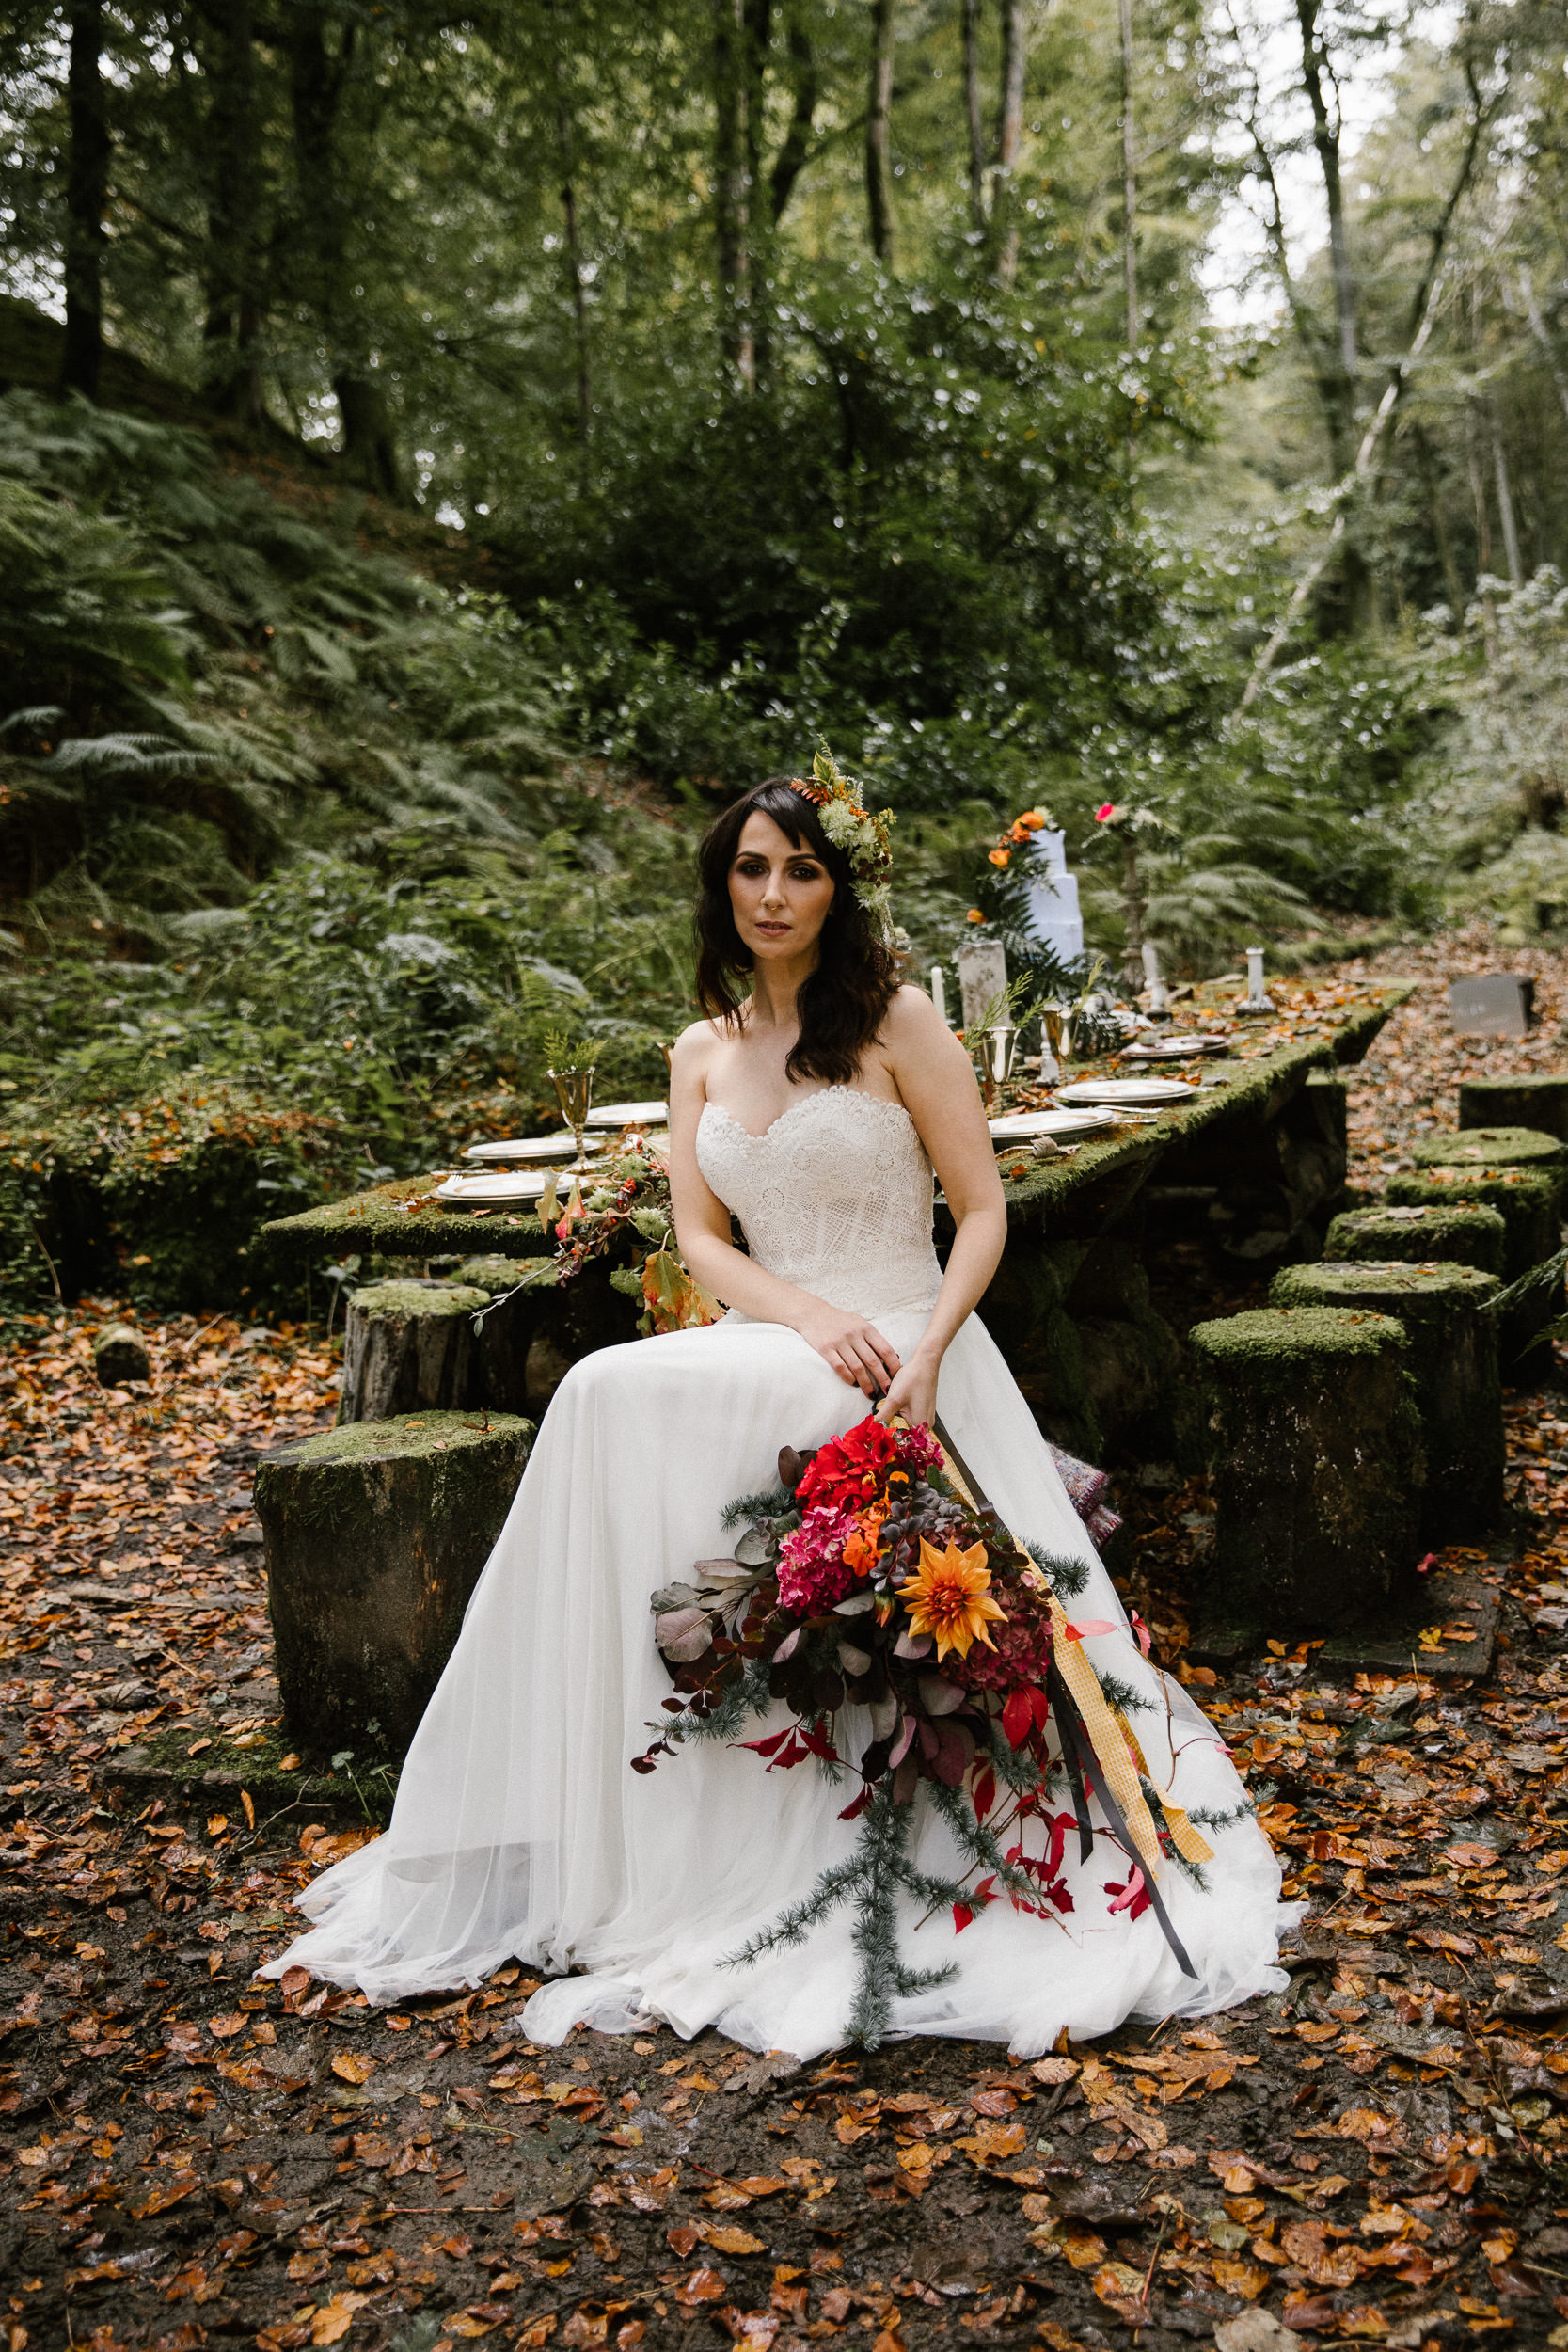 clairebyrnephotography-styled-shoot-huntingbrook-gardens-inspiration-weddings-woods-forest-41.jpg